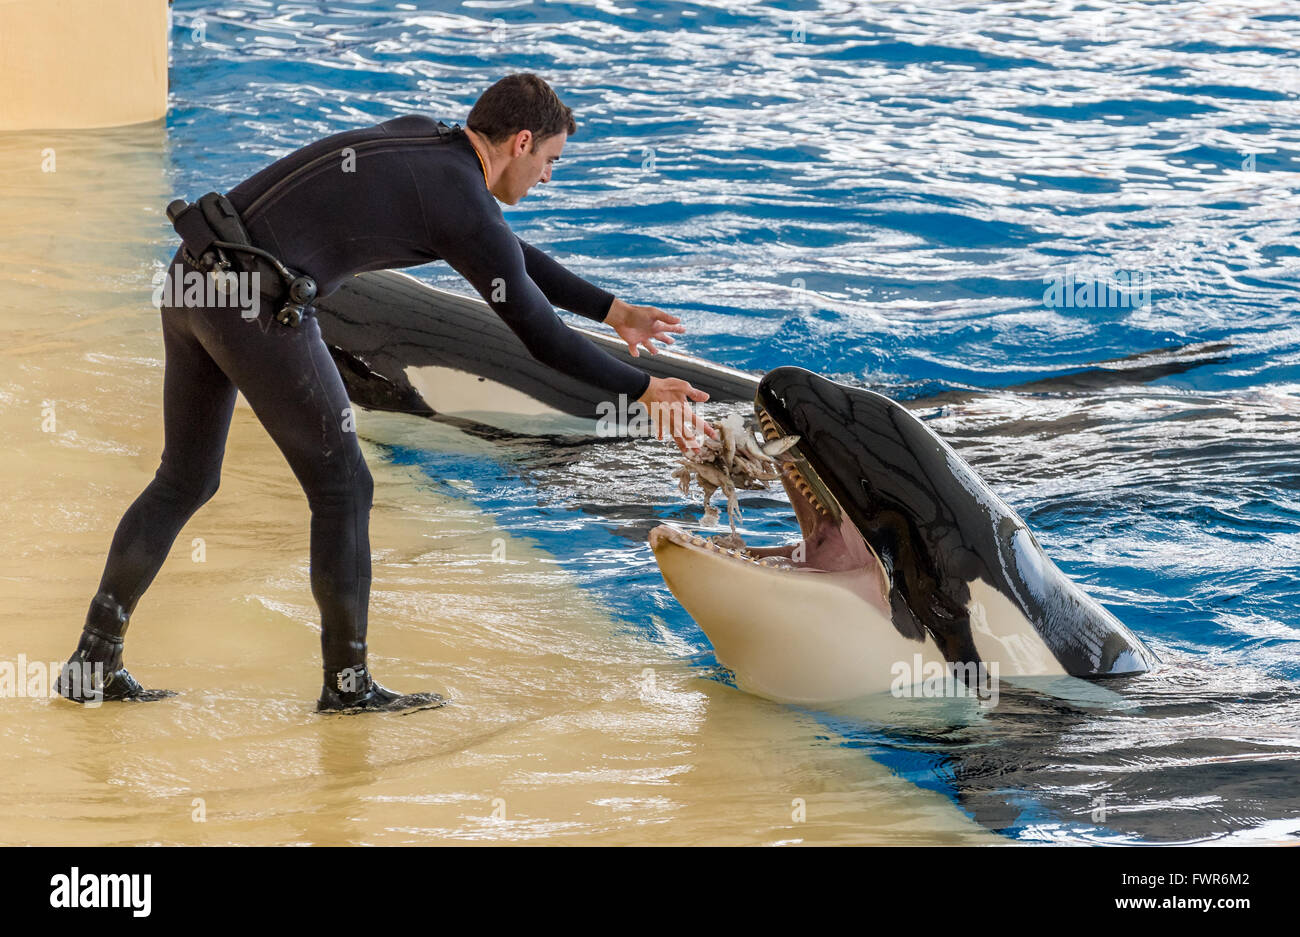 killer whale or orca (Orcinus orca) performing at Loro Parque, Tenerife - Stock Image